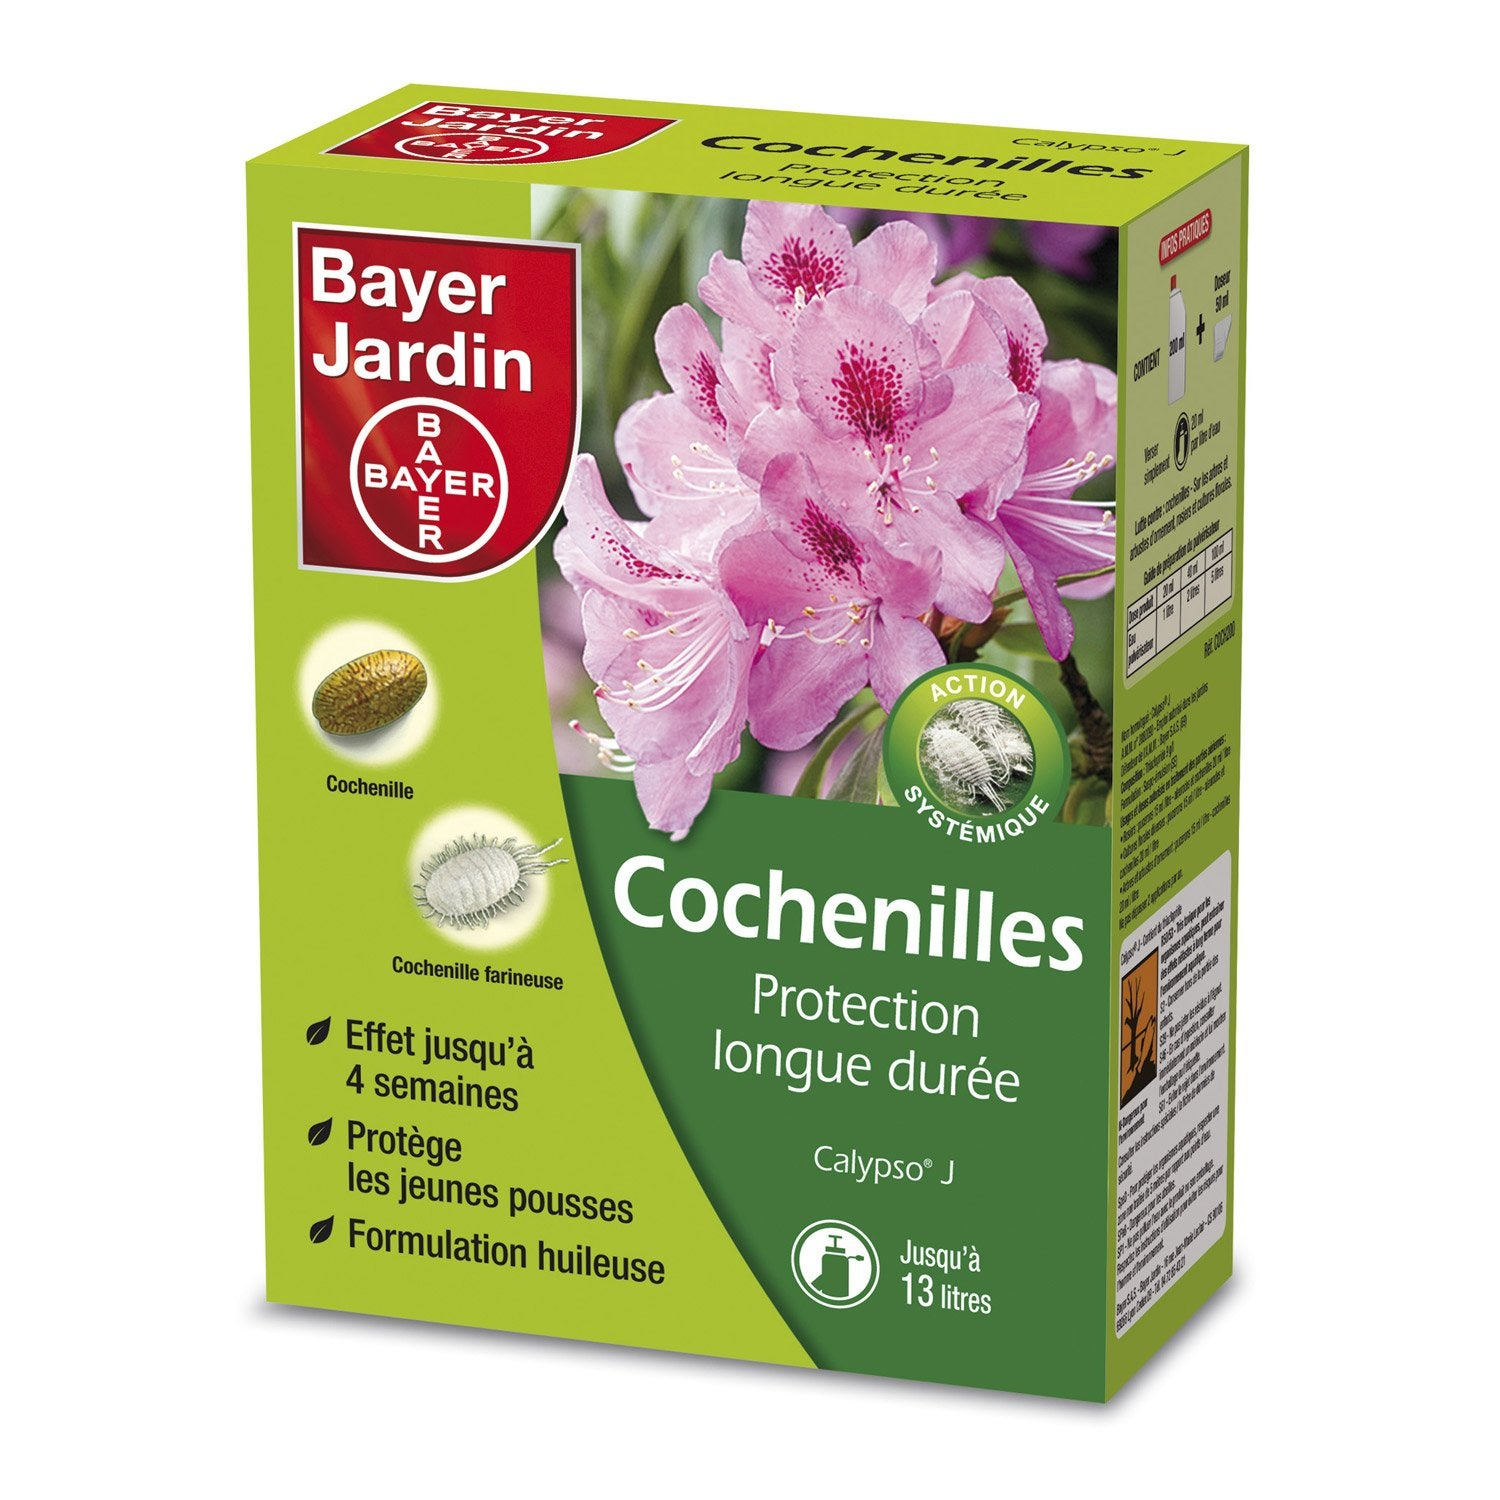 Insecticide cochenilles bayer 200ml leroy merlin for Bayer jardin produits insecticides